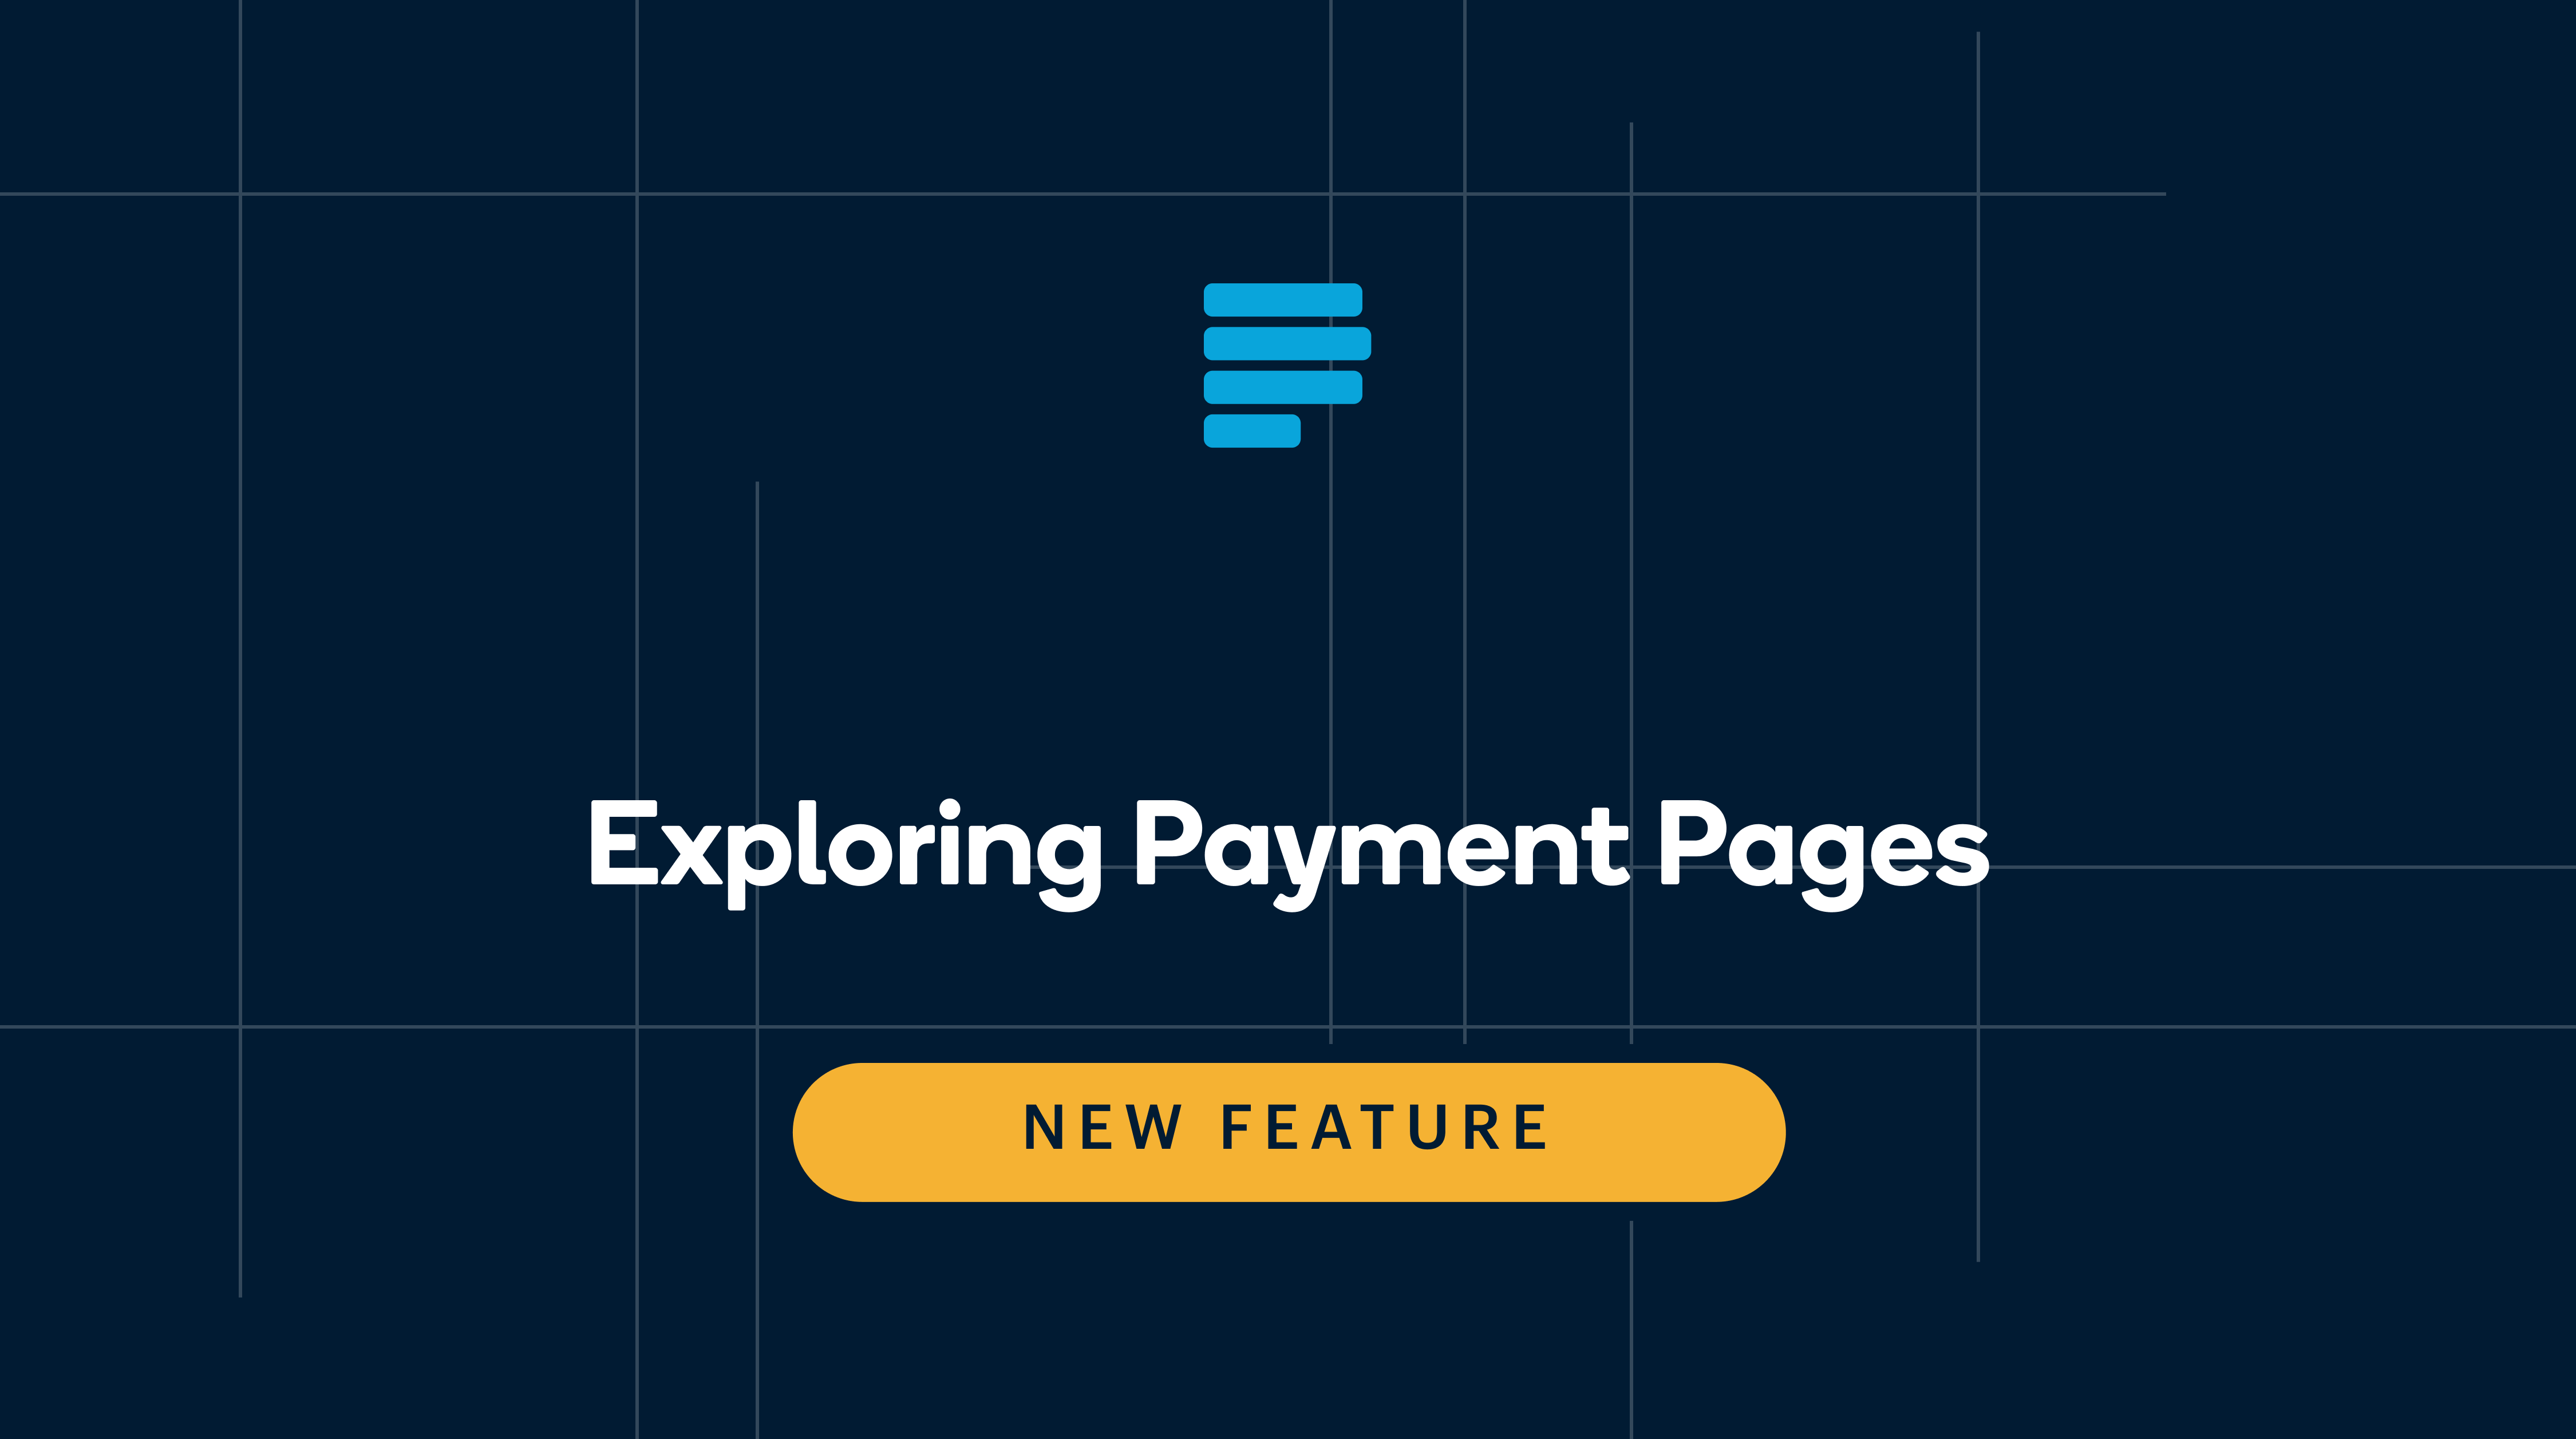 Exploring Payment Pages